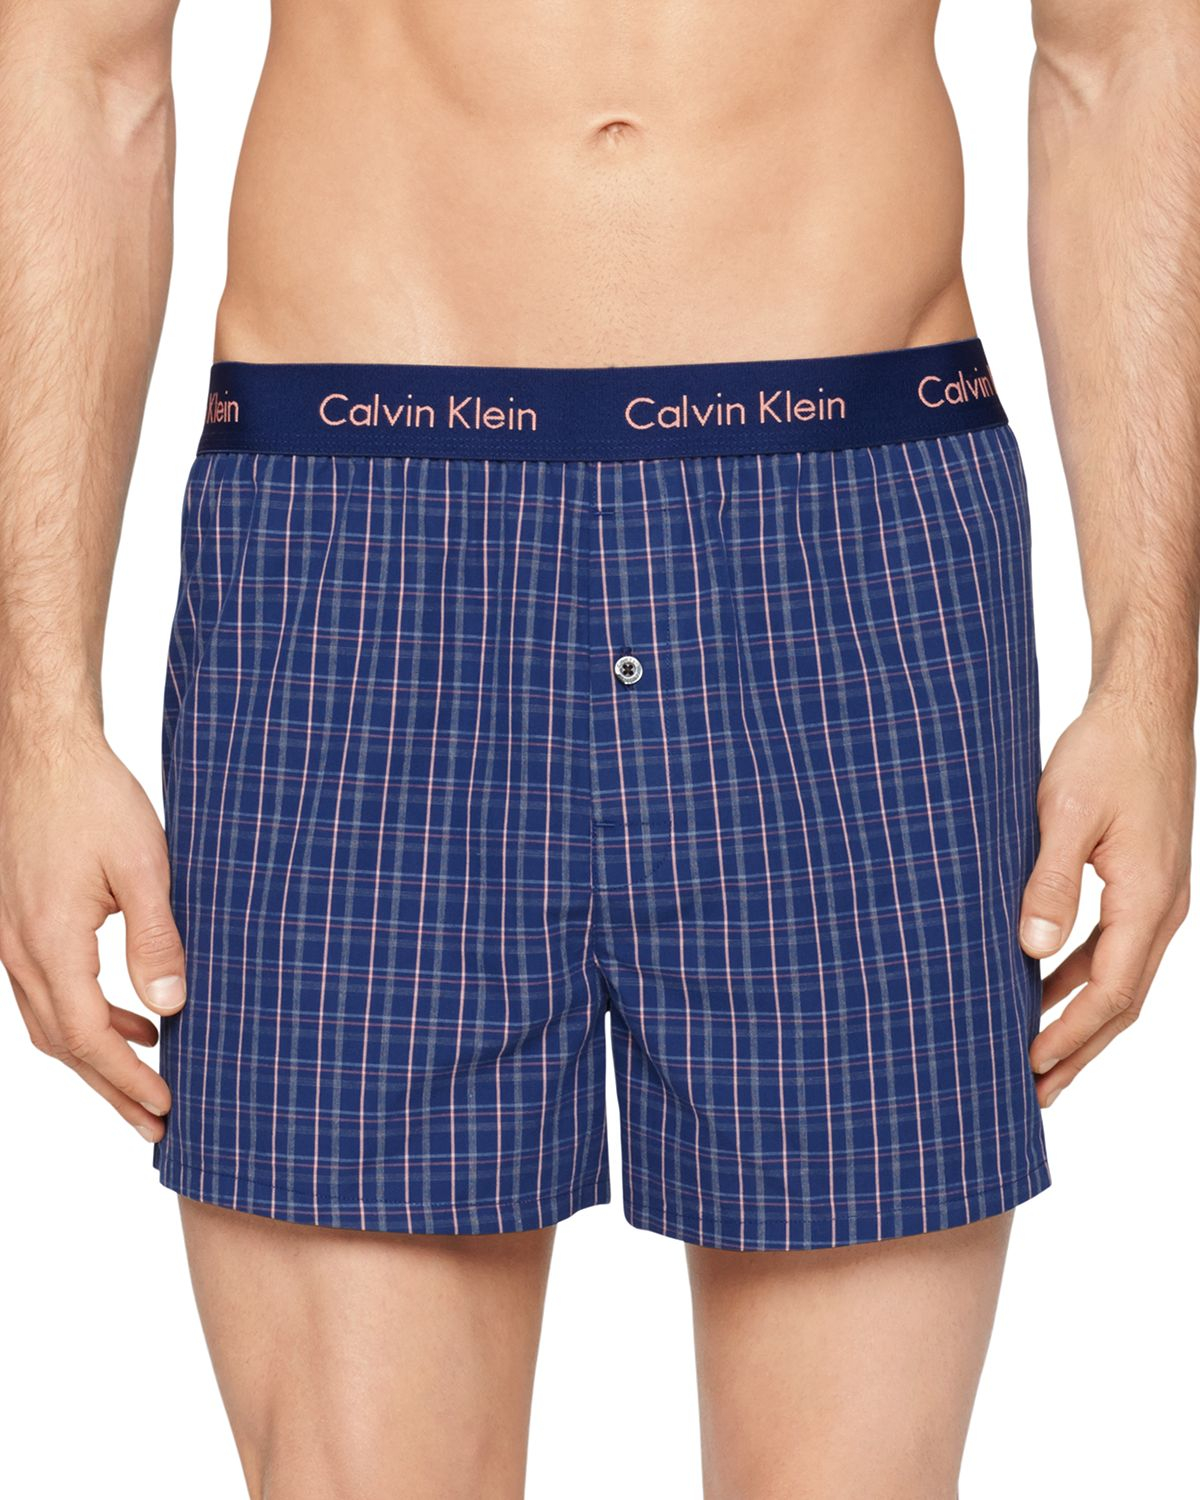 underwear boxers calvin klein underwear calvin klein blue cotton boxer male models picture. Black Bedroom Furniture Sets. Home Design Ideas